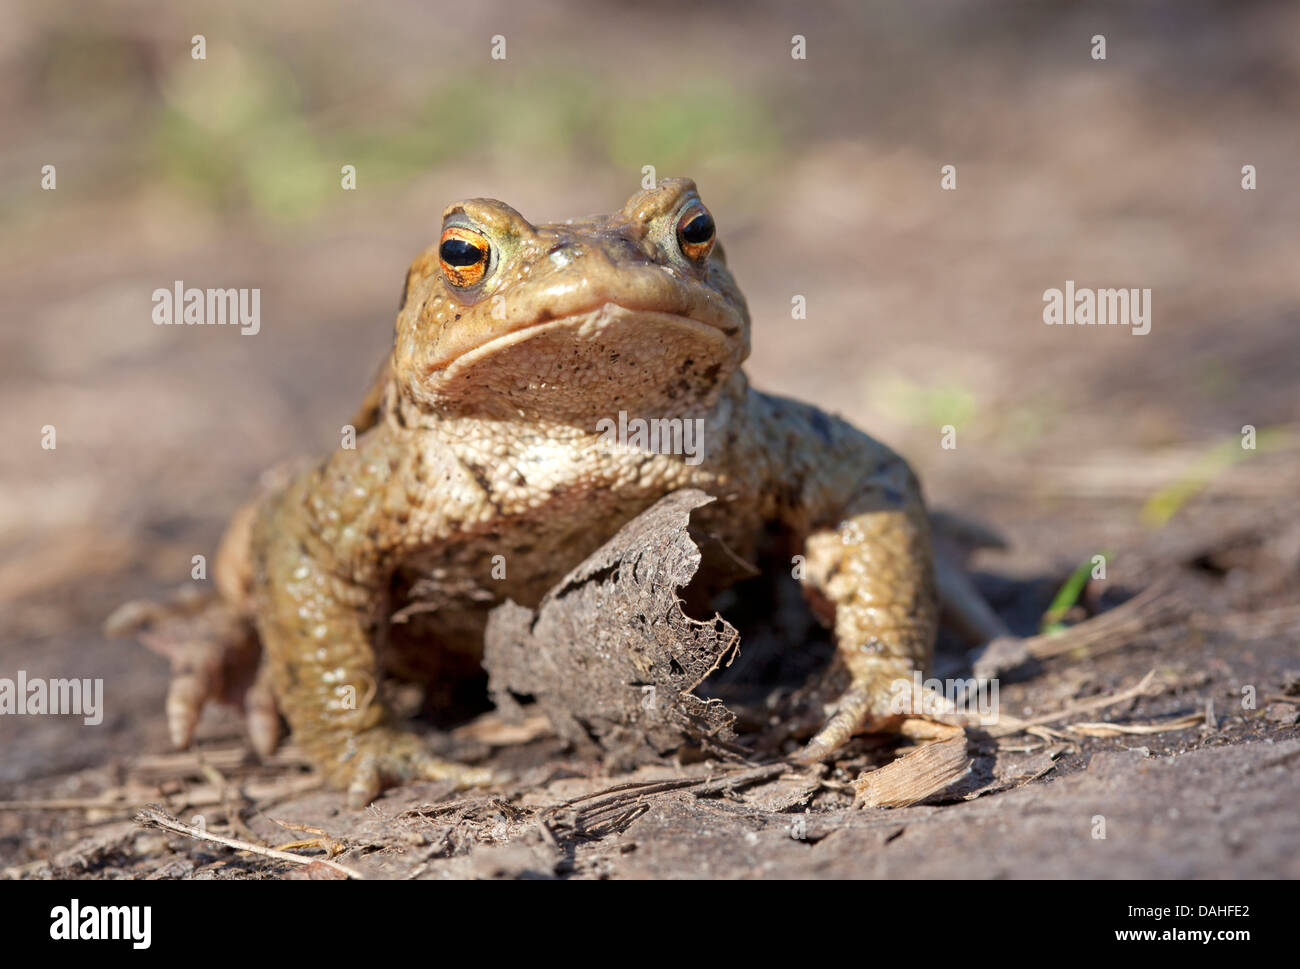 Toad migration, common toad / Bufo bufo Stock Photo